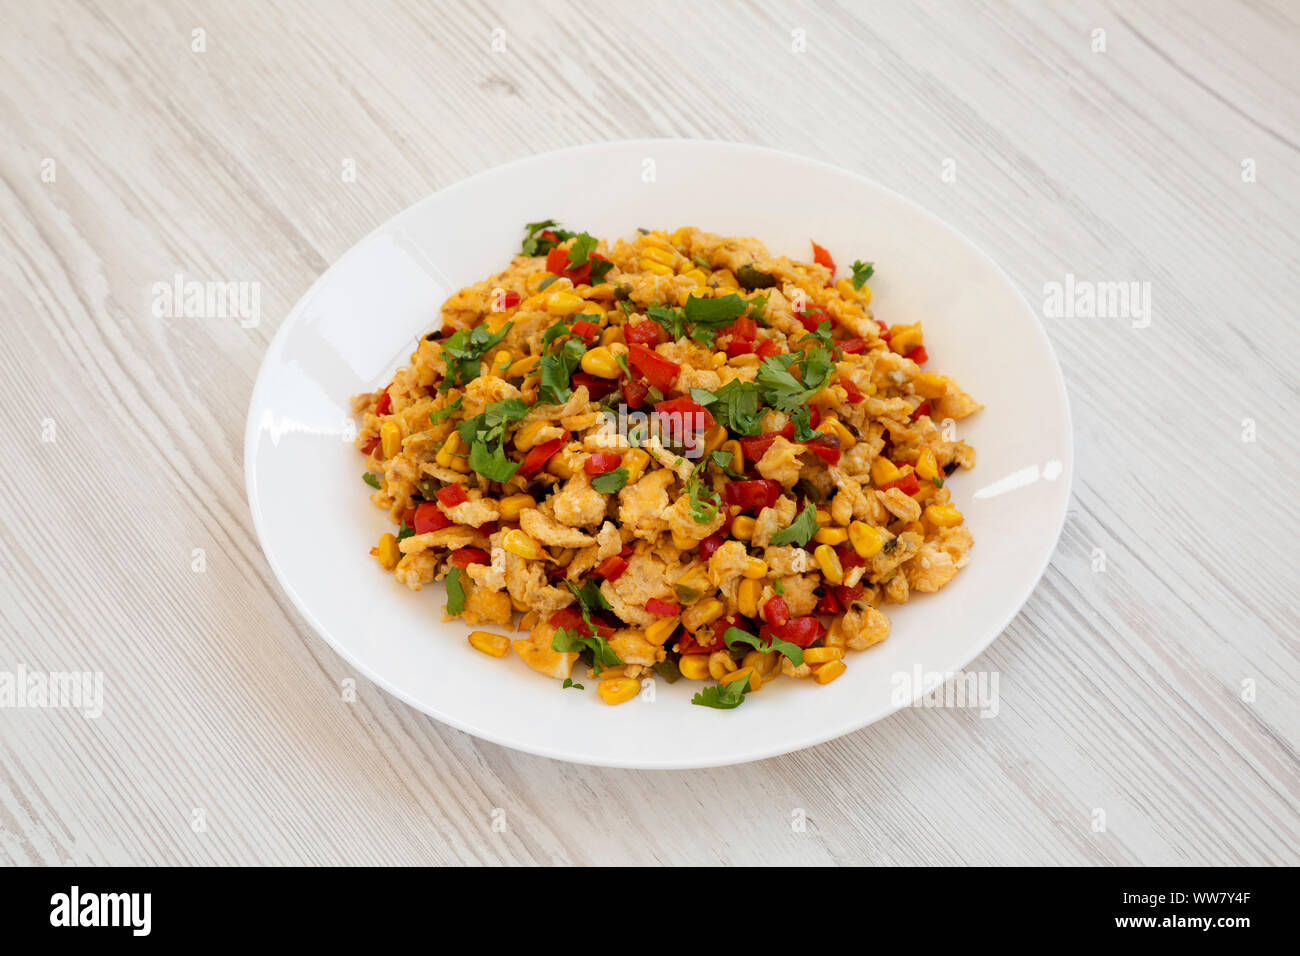 Homemade southwestern egg scramble on a white plate on a white wooden background, side view. Stock Photo